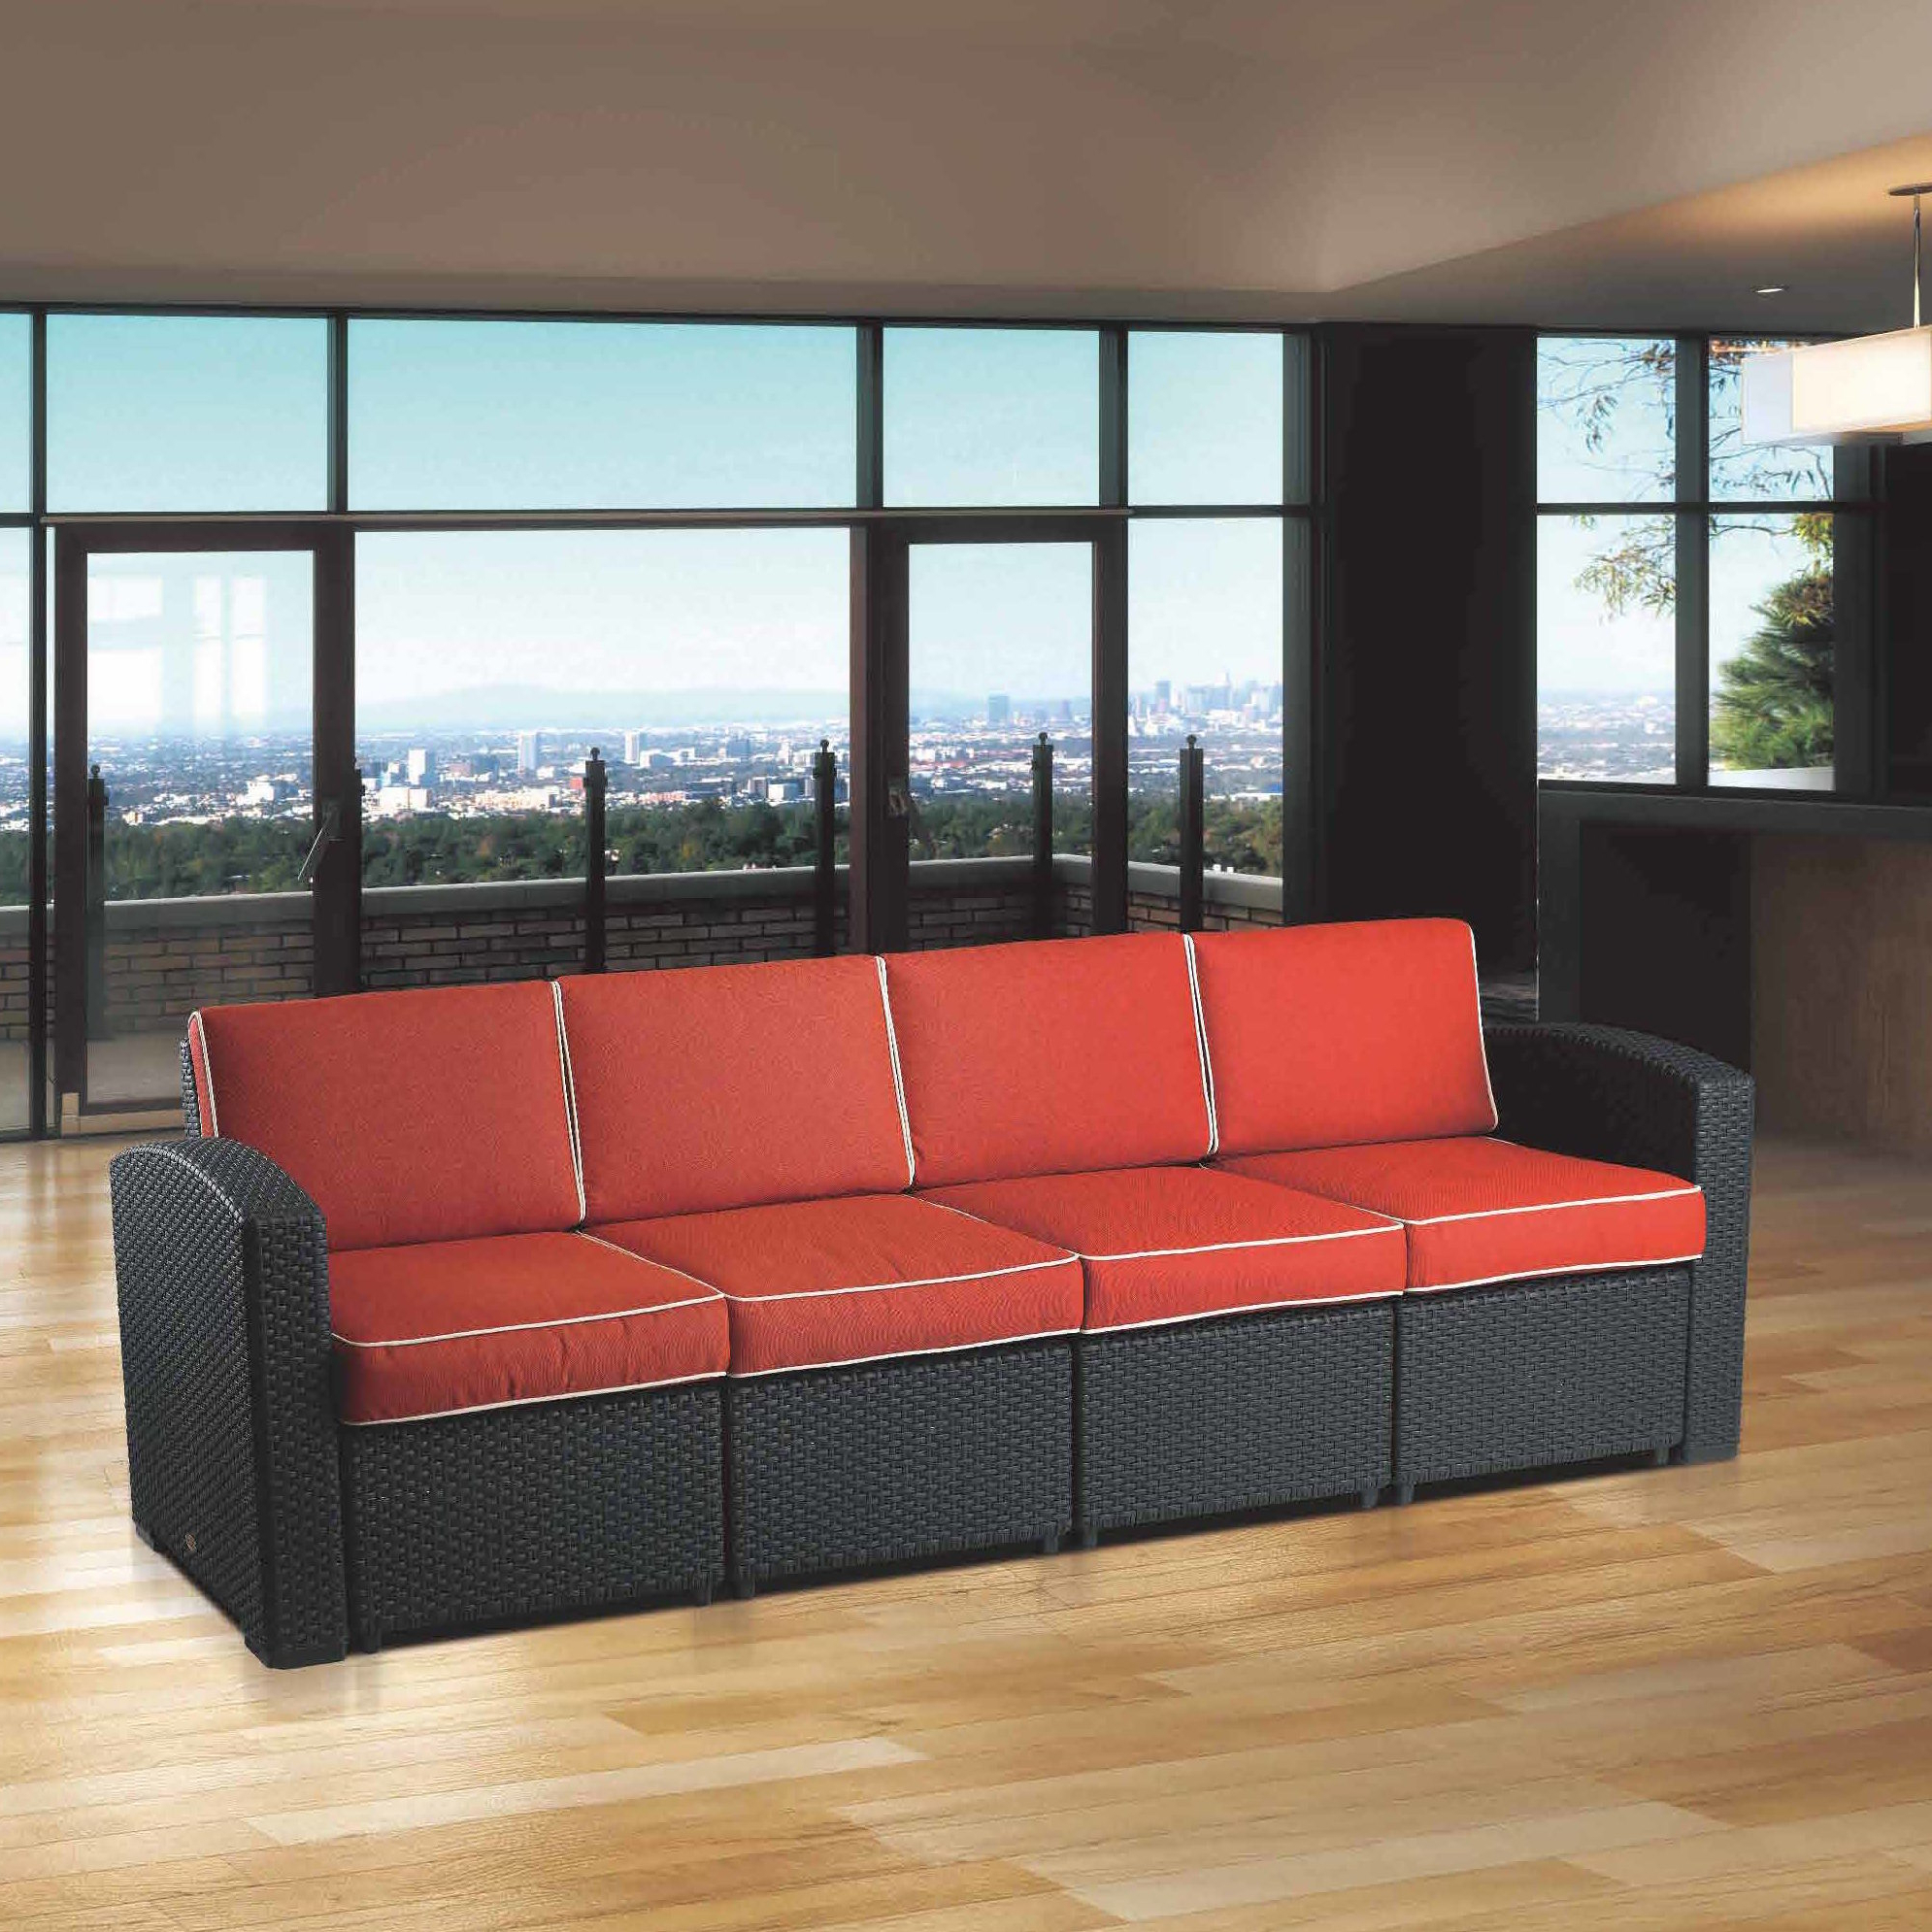 Loggins Patio Sofas With Cushions With Recent Brayden Studio Loggins Patio Sofa With Cushions & Reviews (View 11 of 20)